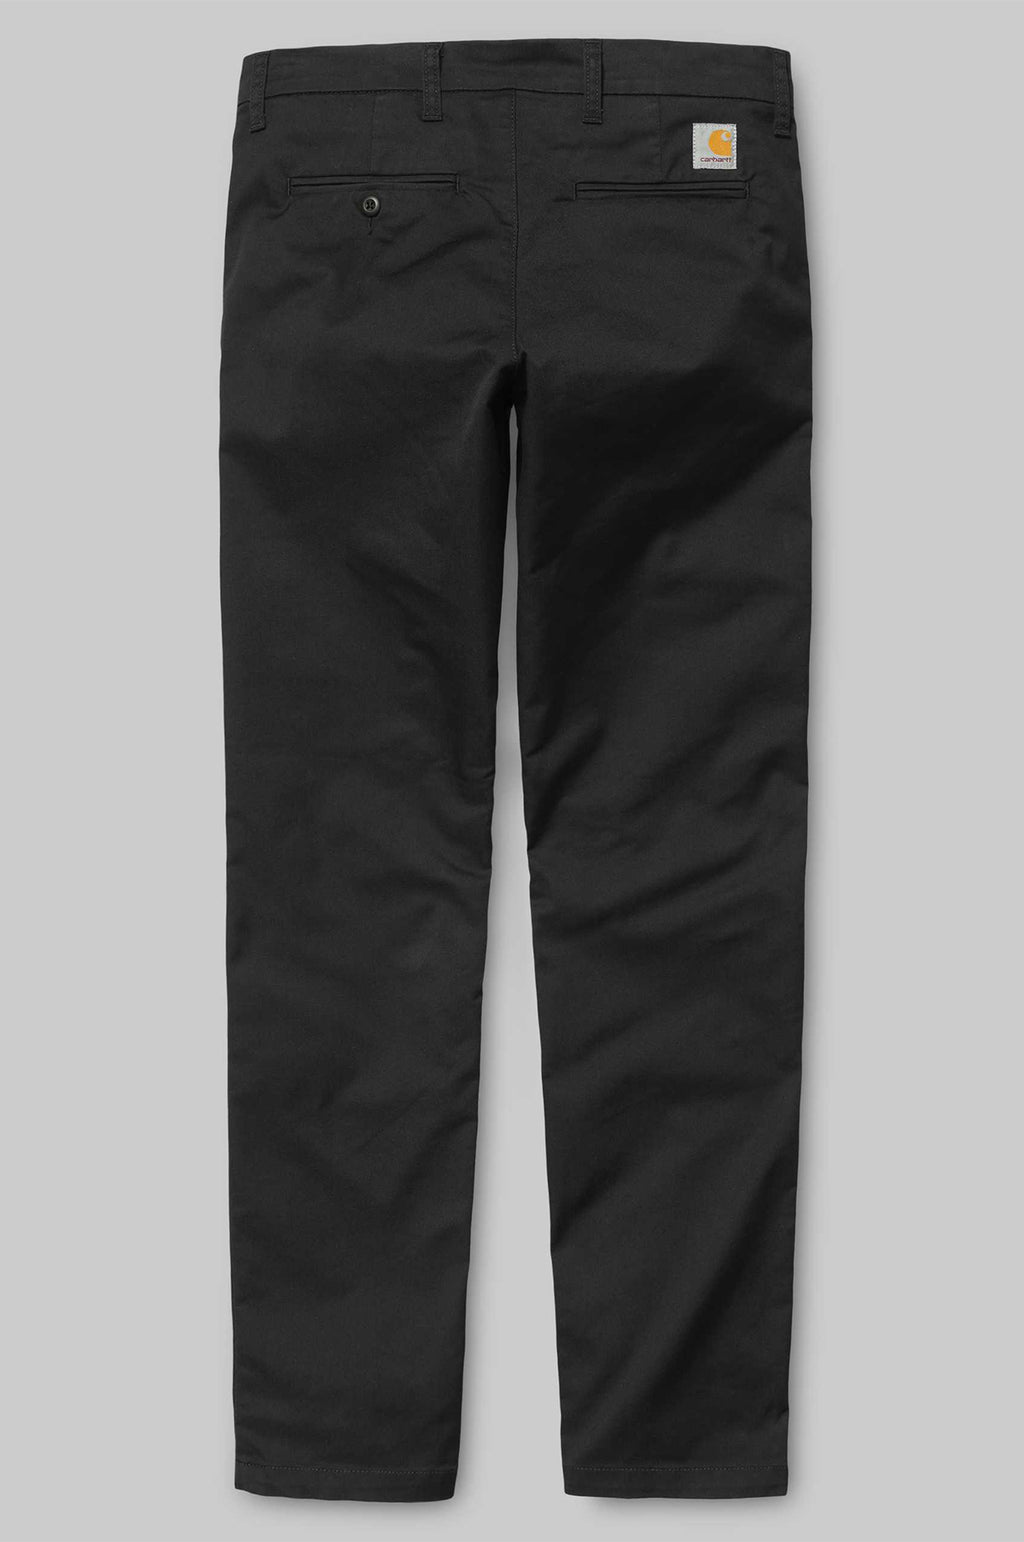 Sid Twill Pant in Black